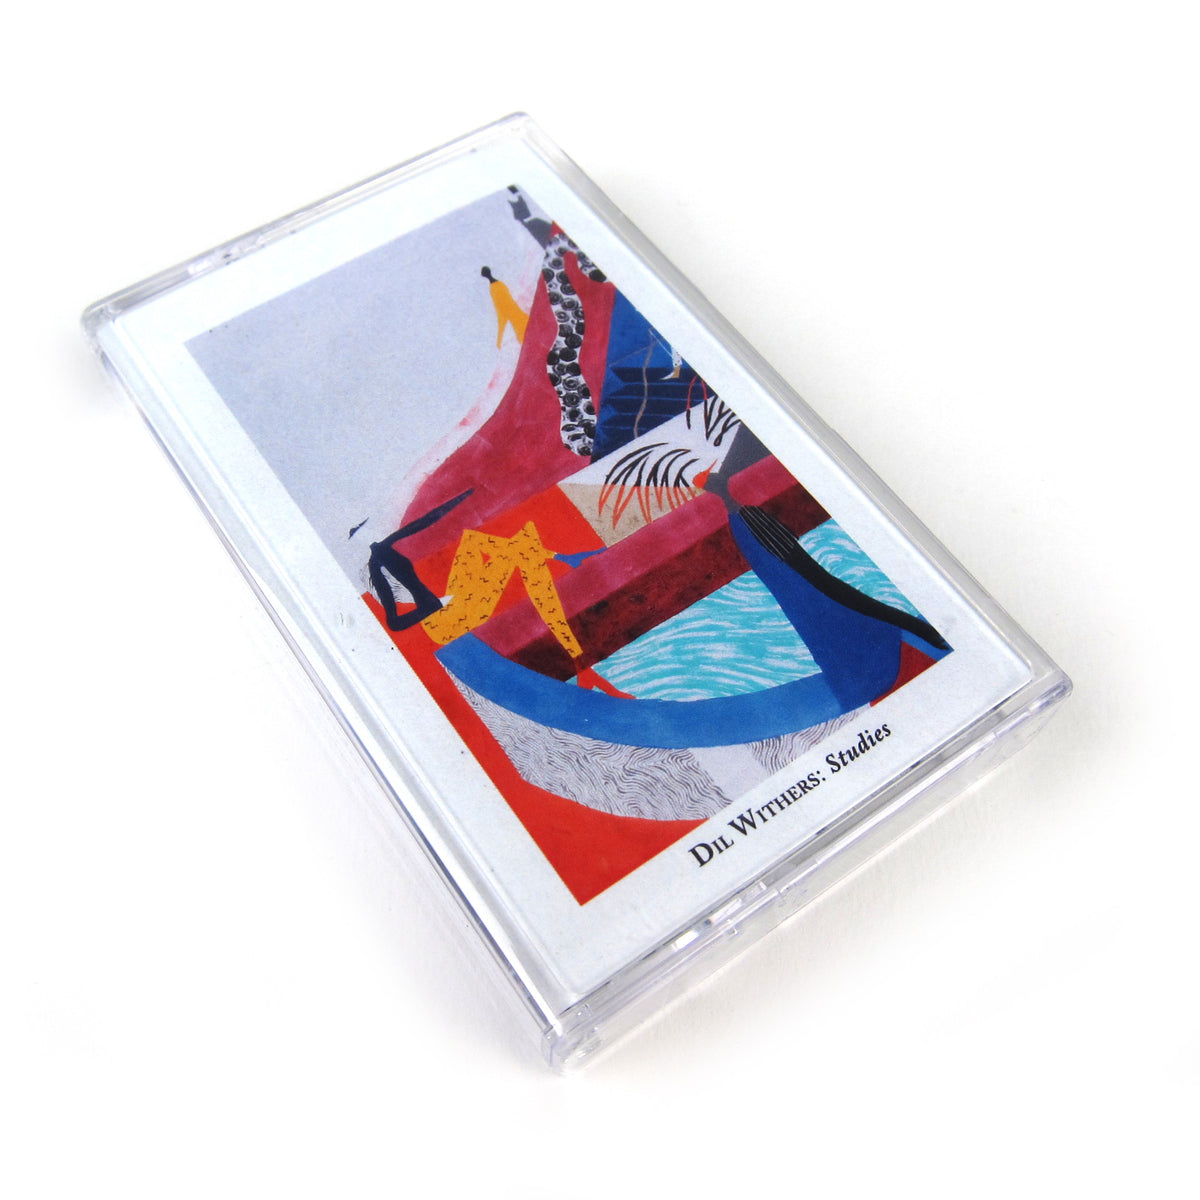 Dil Withers: Studies Cassette